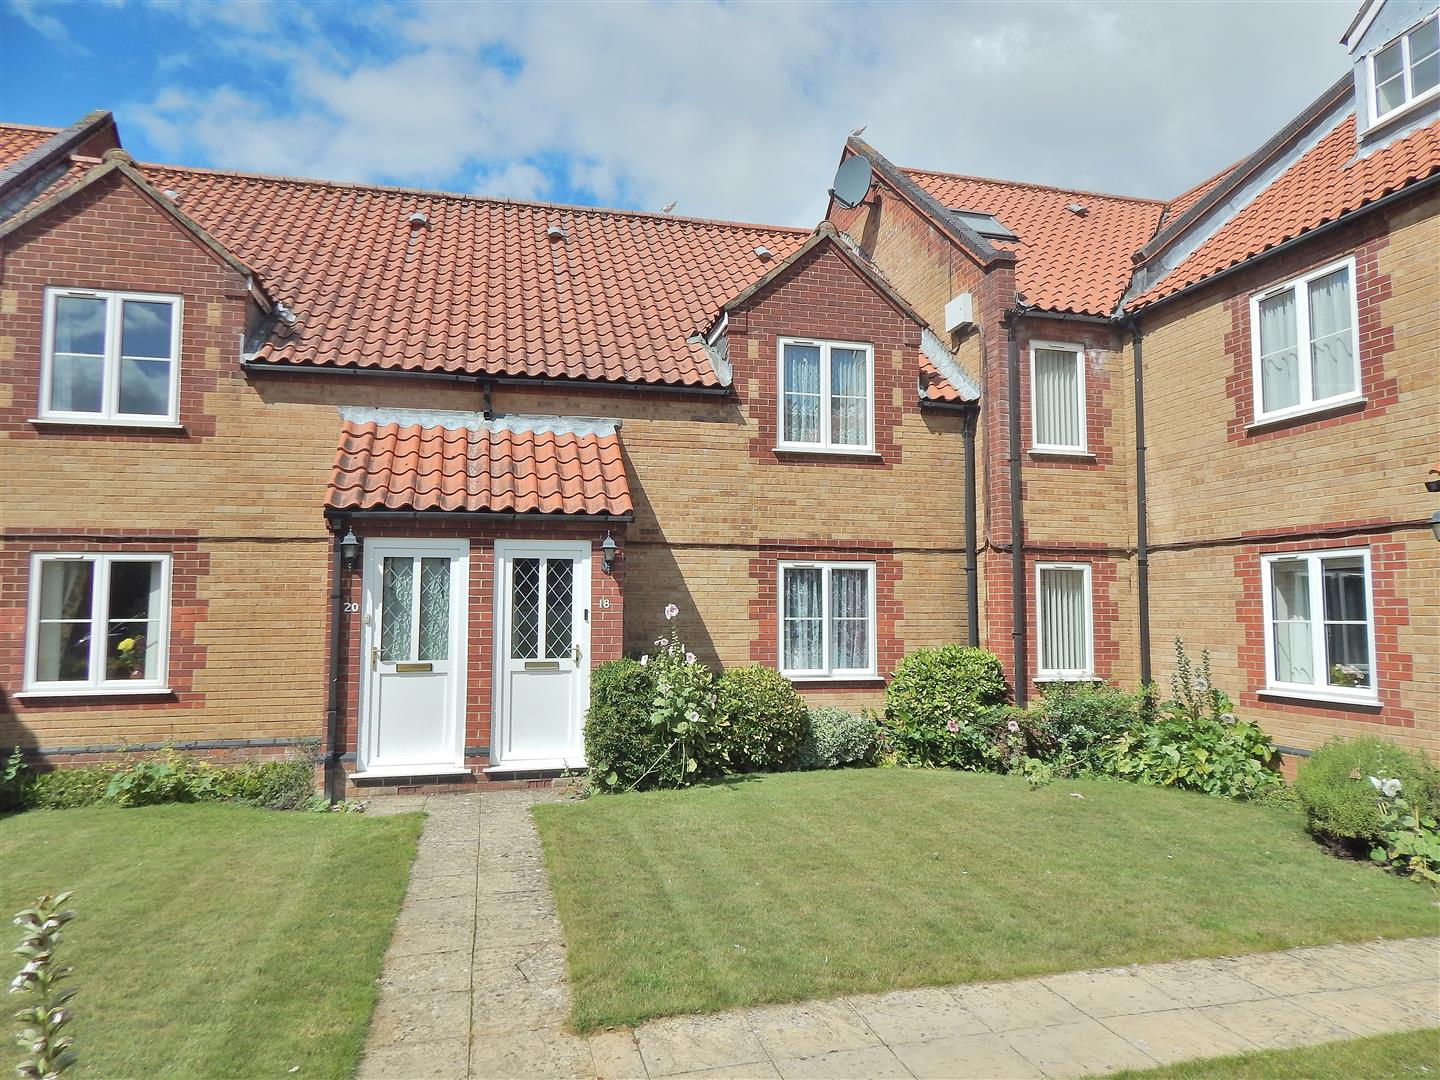 1 bed flat for sale in King's Lynn, PE31 6RG 0